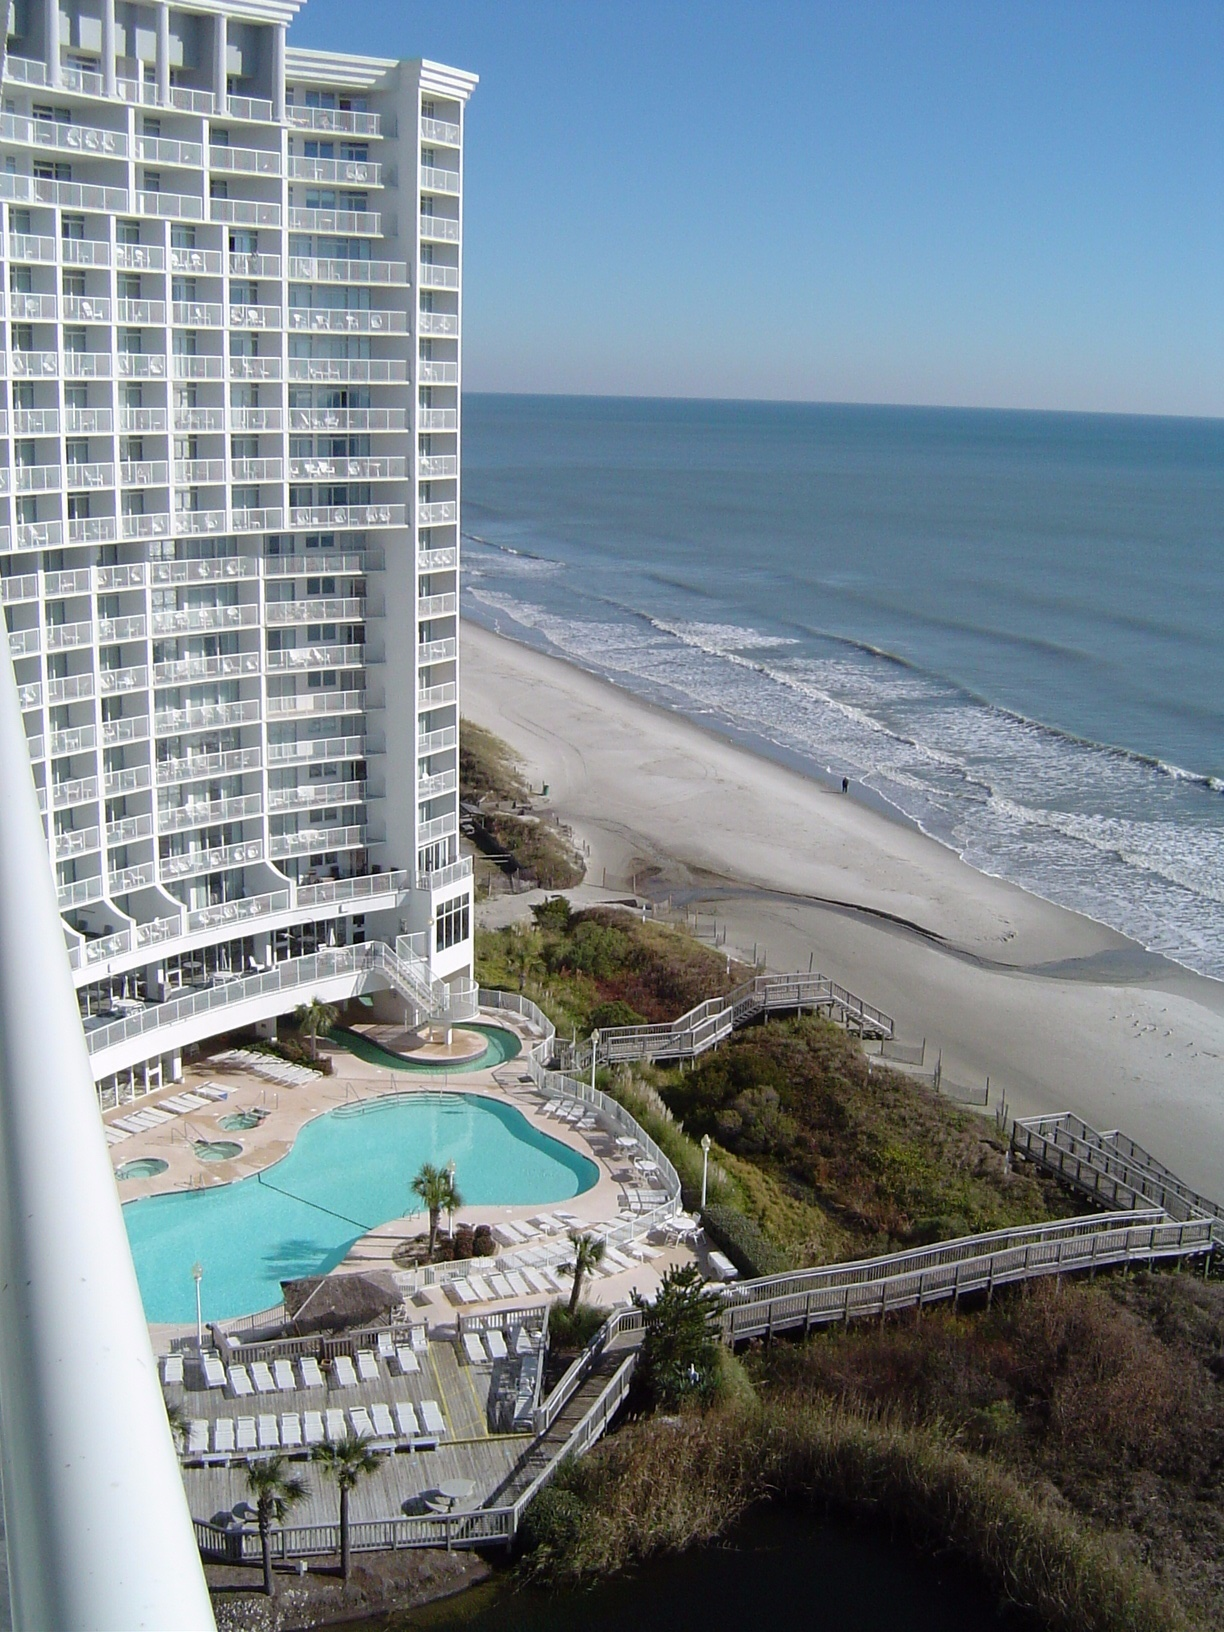 Apartment Seawatch Plantation 1 Bedroom 1 Bathroom photo 20365204